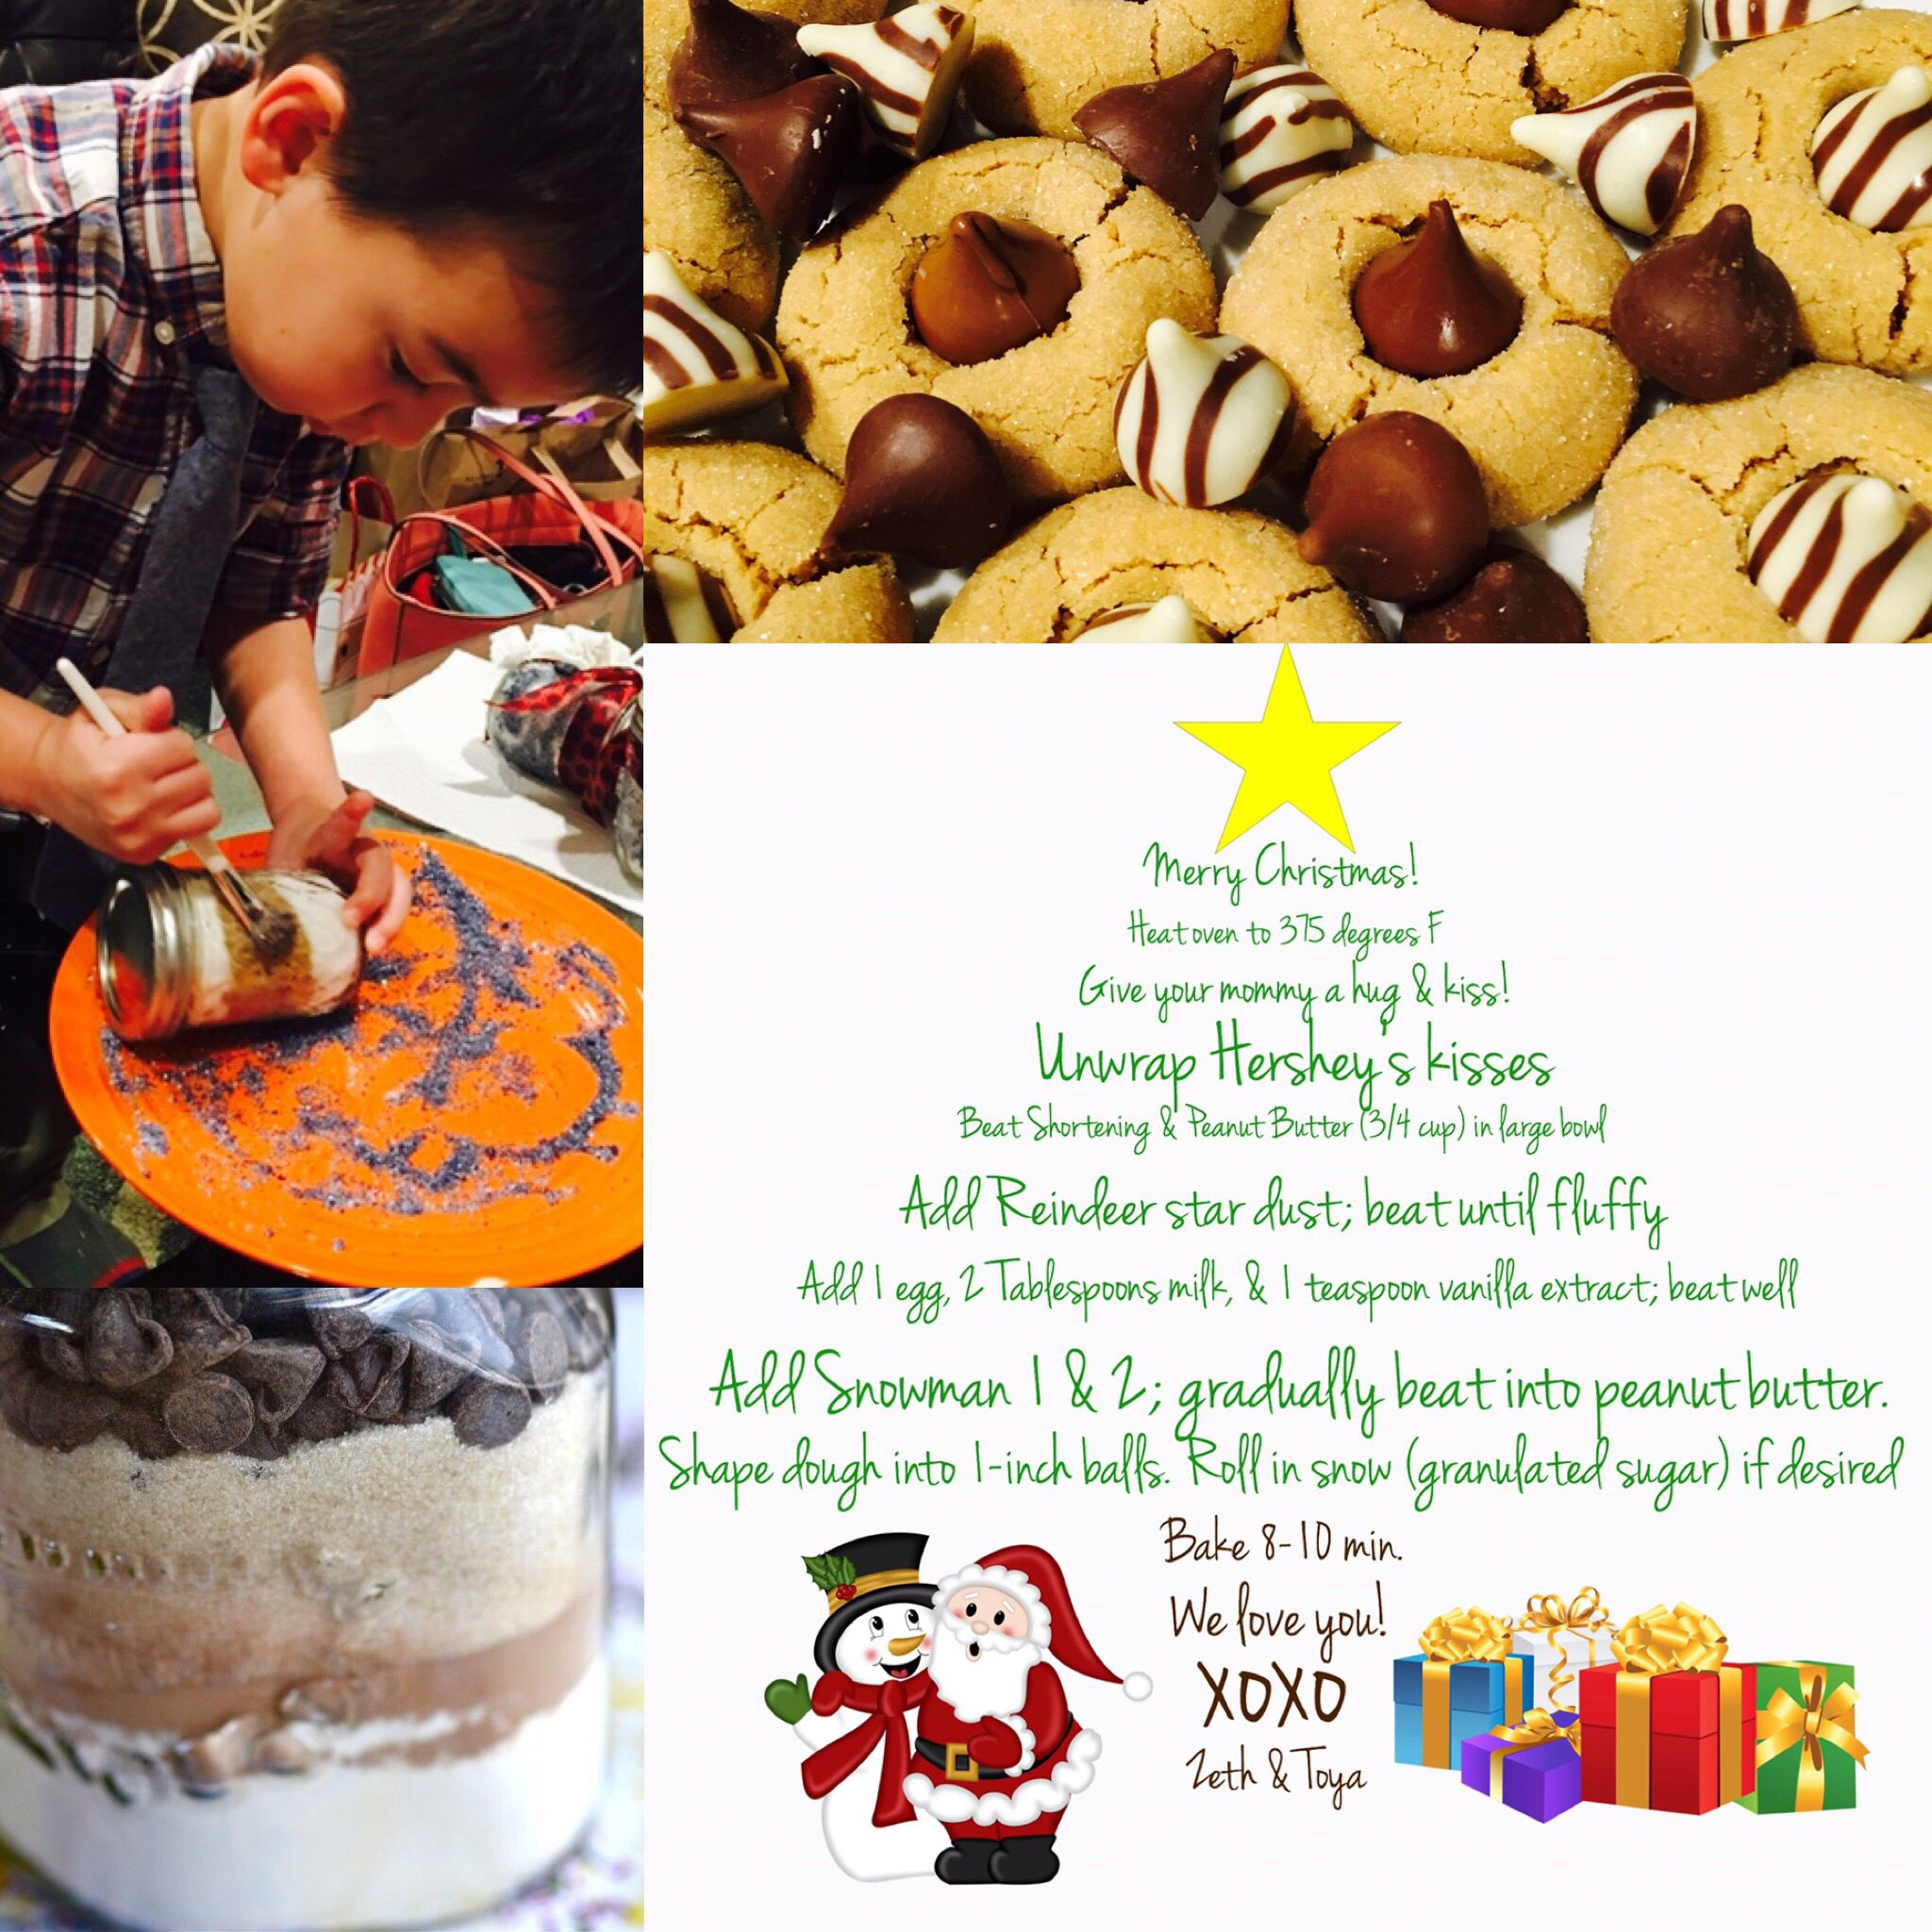 Put the instructions for our cookies in a mason jar gift in the shape of a Christmas tree.  And part of the gift was to design the mason jars together.  The best gift is the gift of time...the time to create/make memories with one another.   #Christmas #bake #cookies #gift #diy #memories #santa #crafts #baking #masonjar #design #graphicdesign #creative #create #typography #presents #christmastree